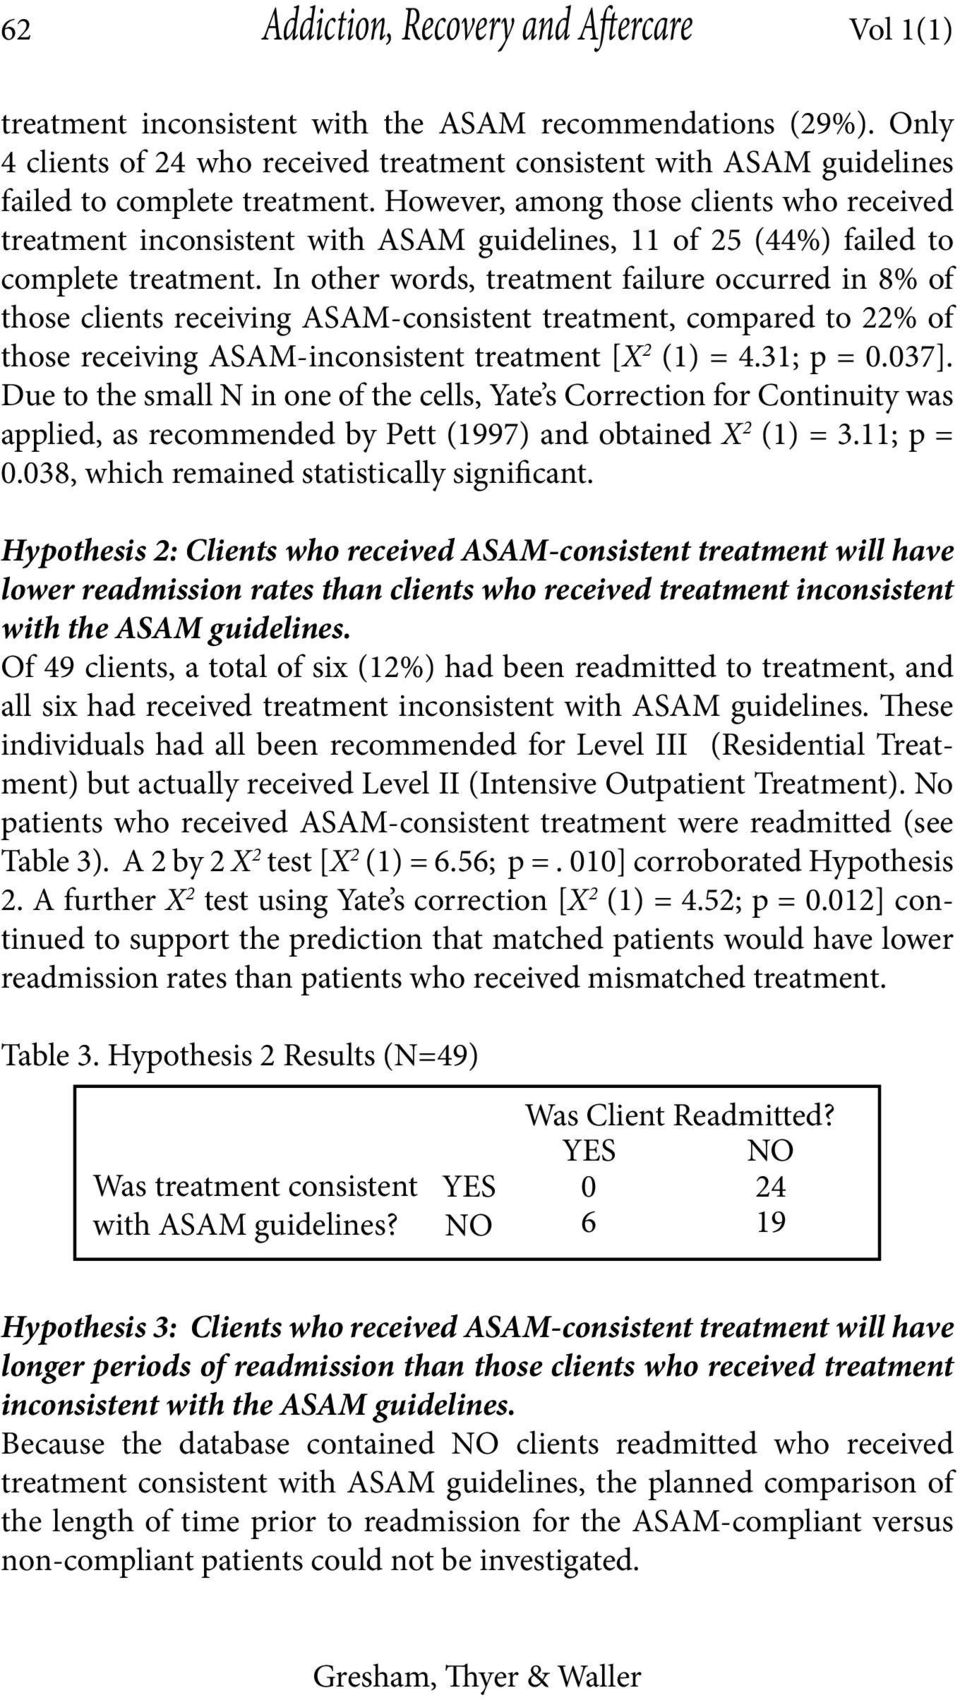 However, among those clients who received treatment inconsistent with ASAM guidelines, 11 of 25 (44%) failed to complete treatment.